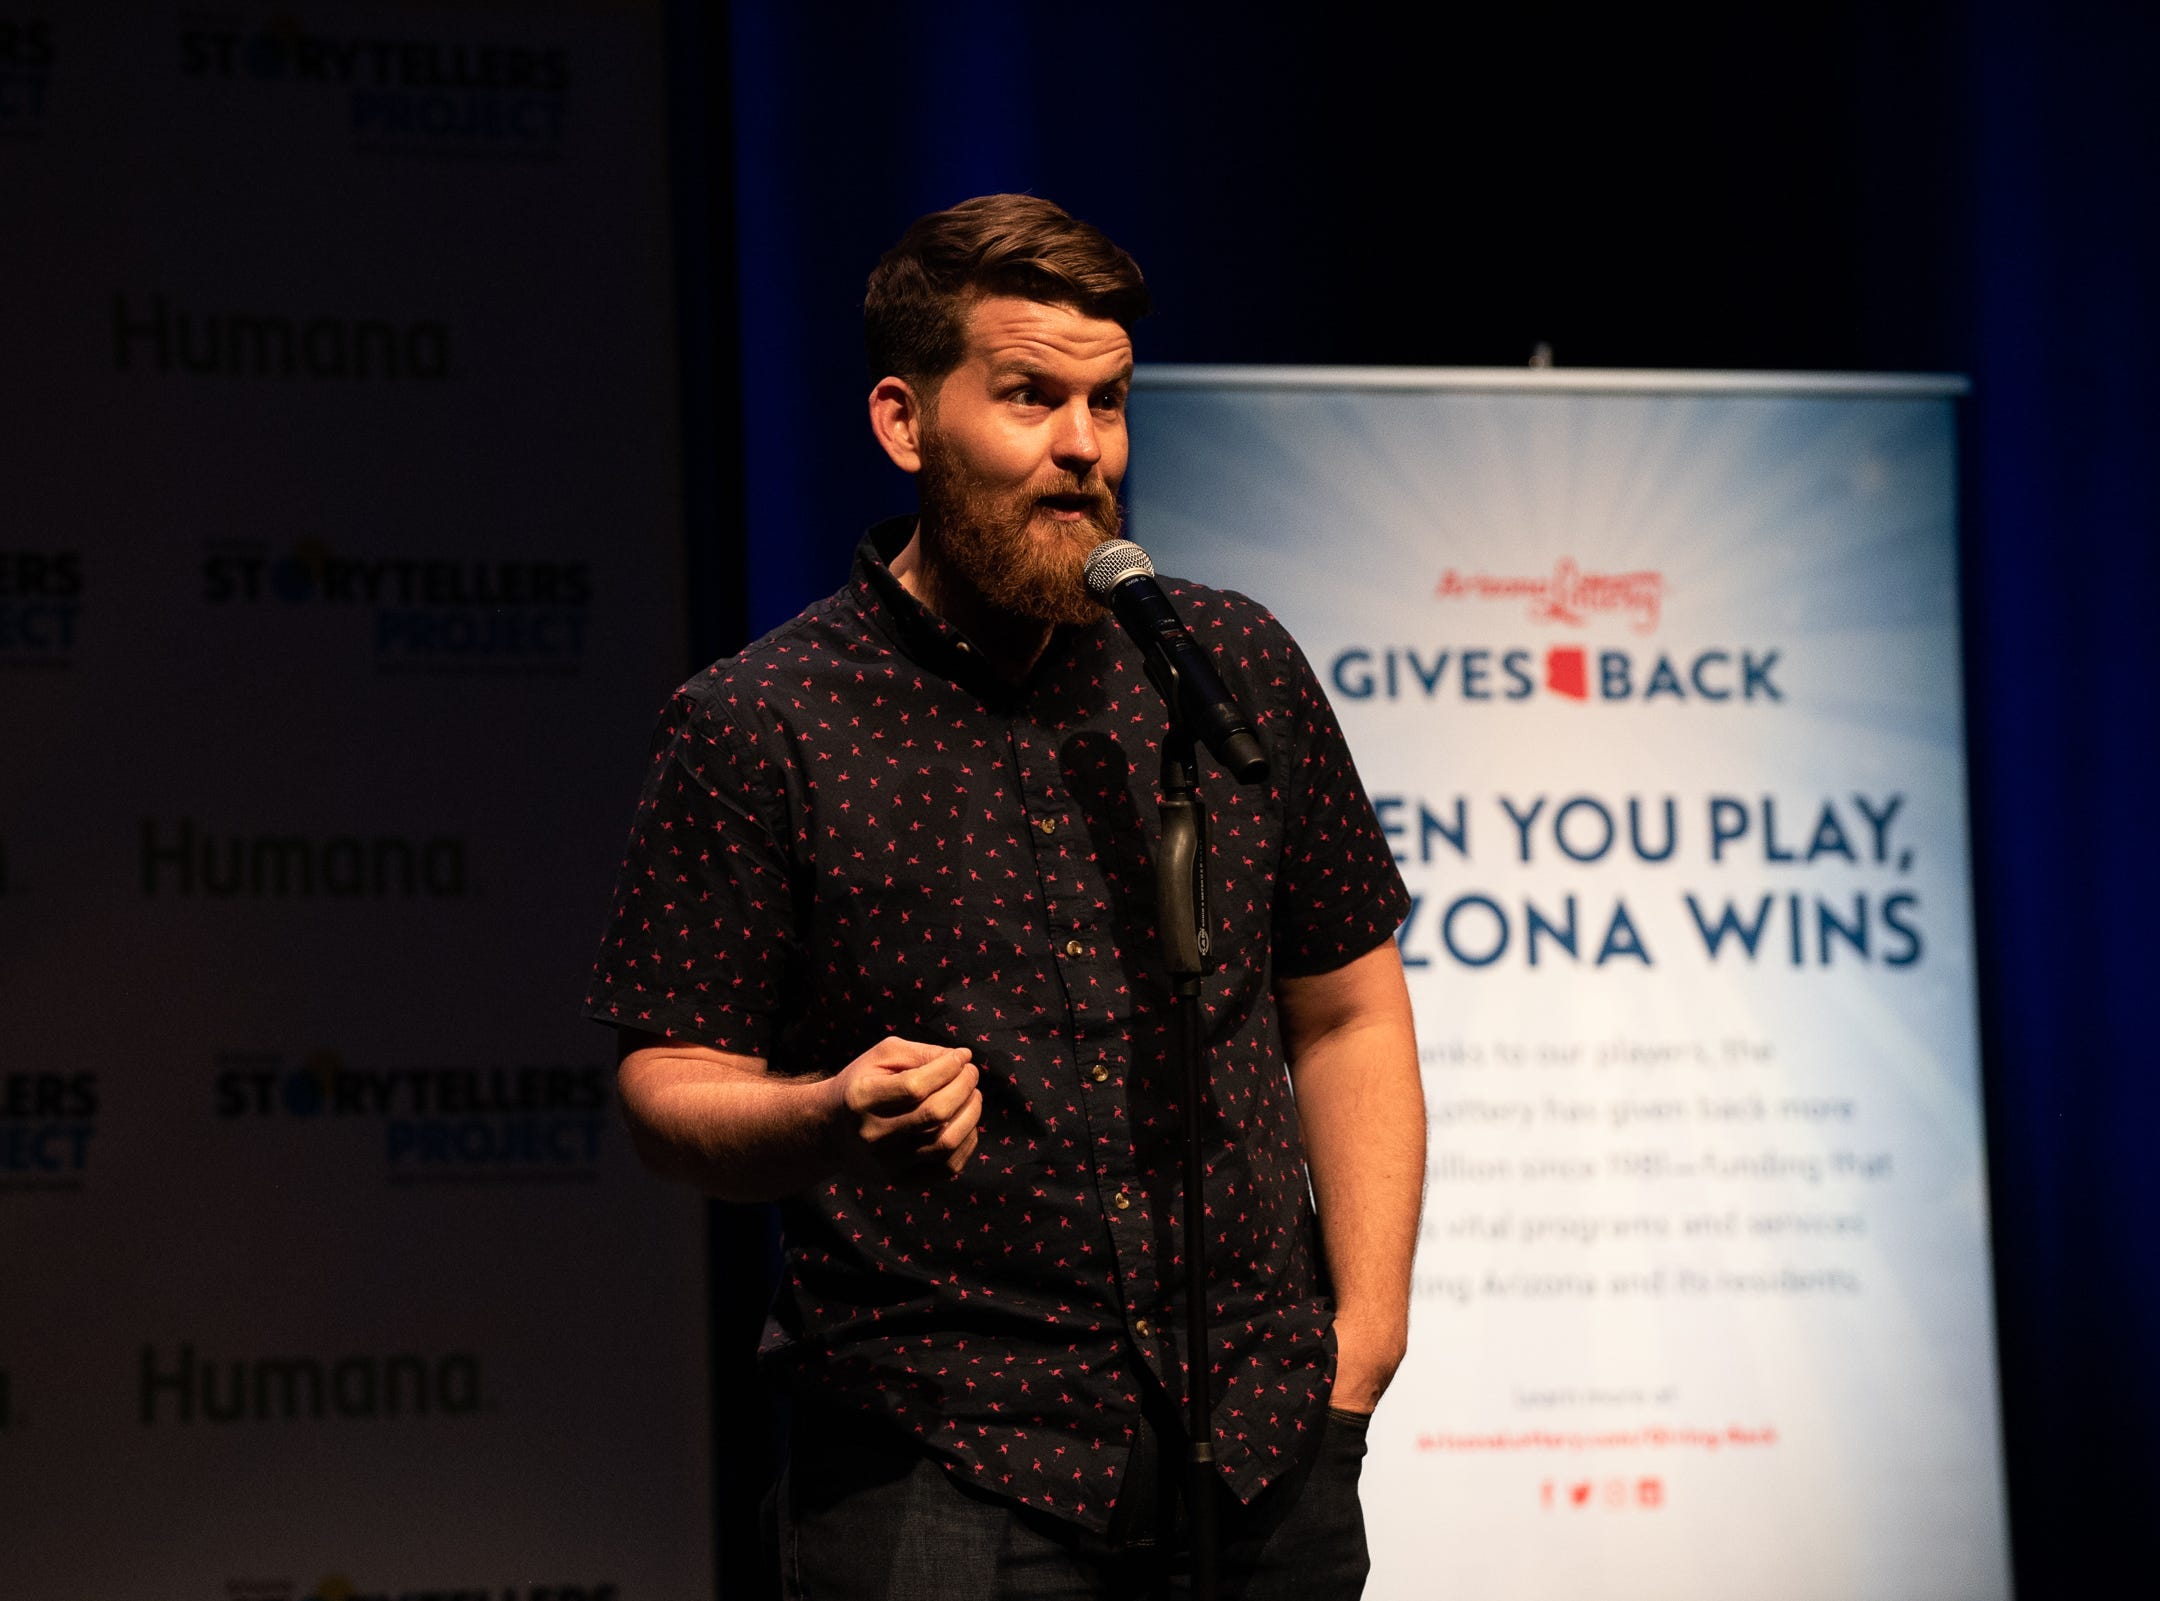 Josh Shore tells his tale with a surprise ending during The Storytellers Project presents Romance - or Not at the Scottsdale Center for Performing Arts on Wednesday, Feb. 13, 2019.